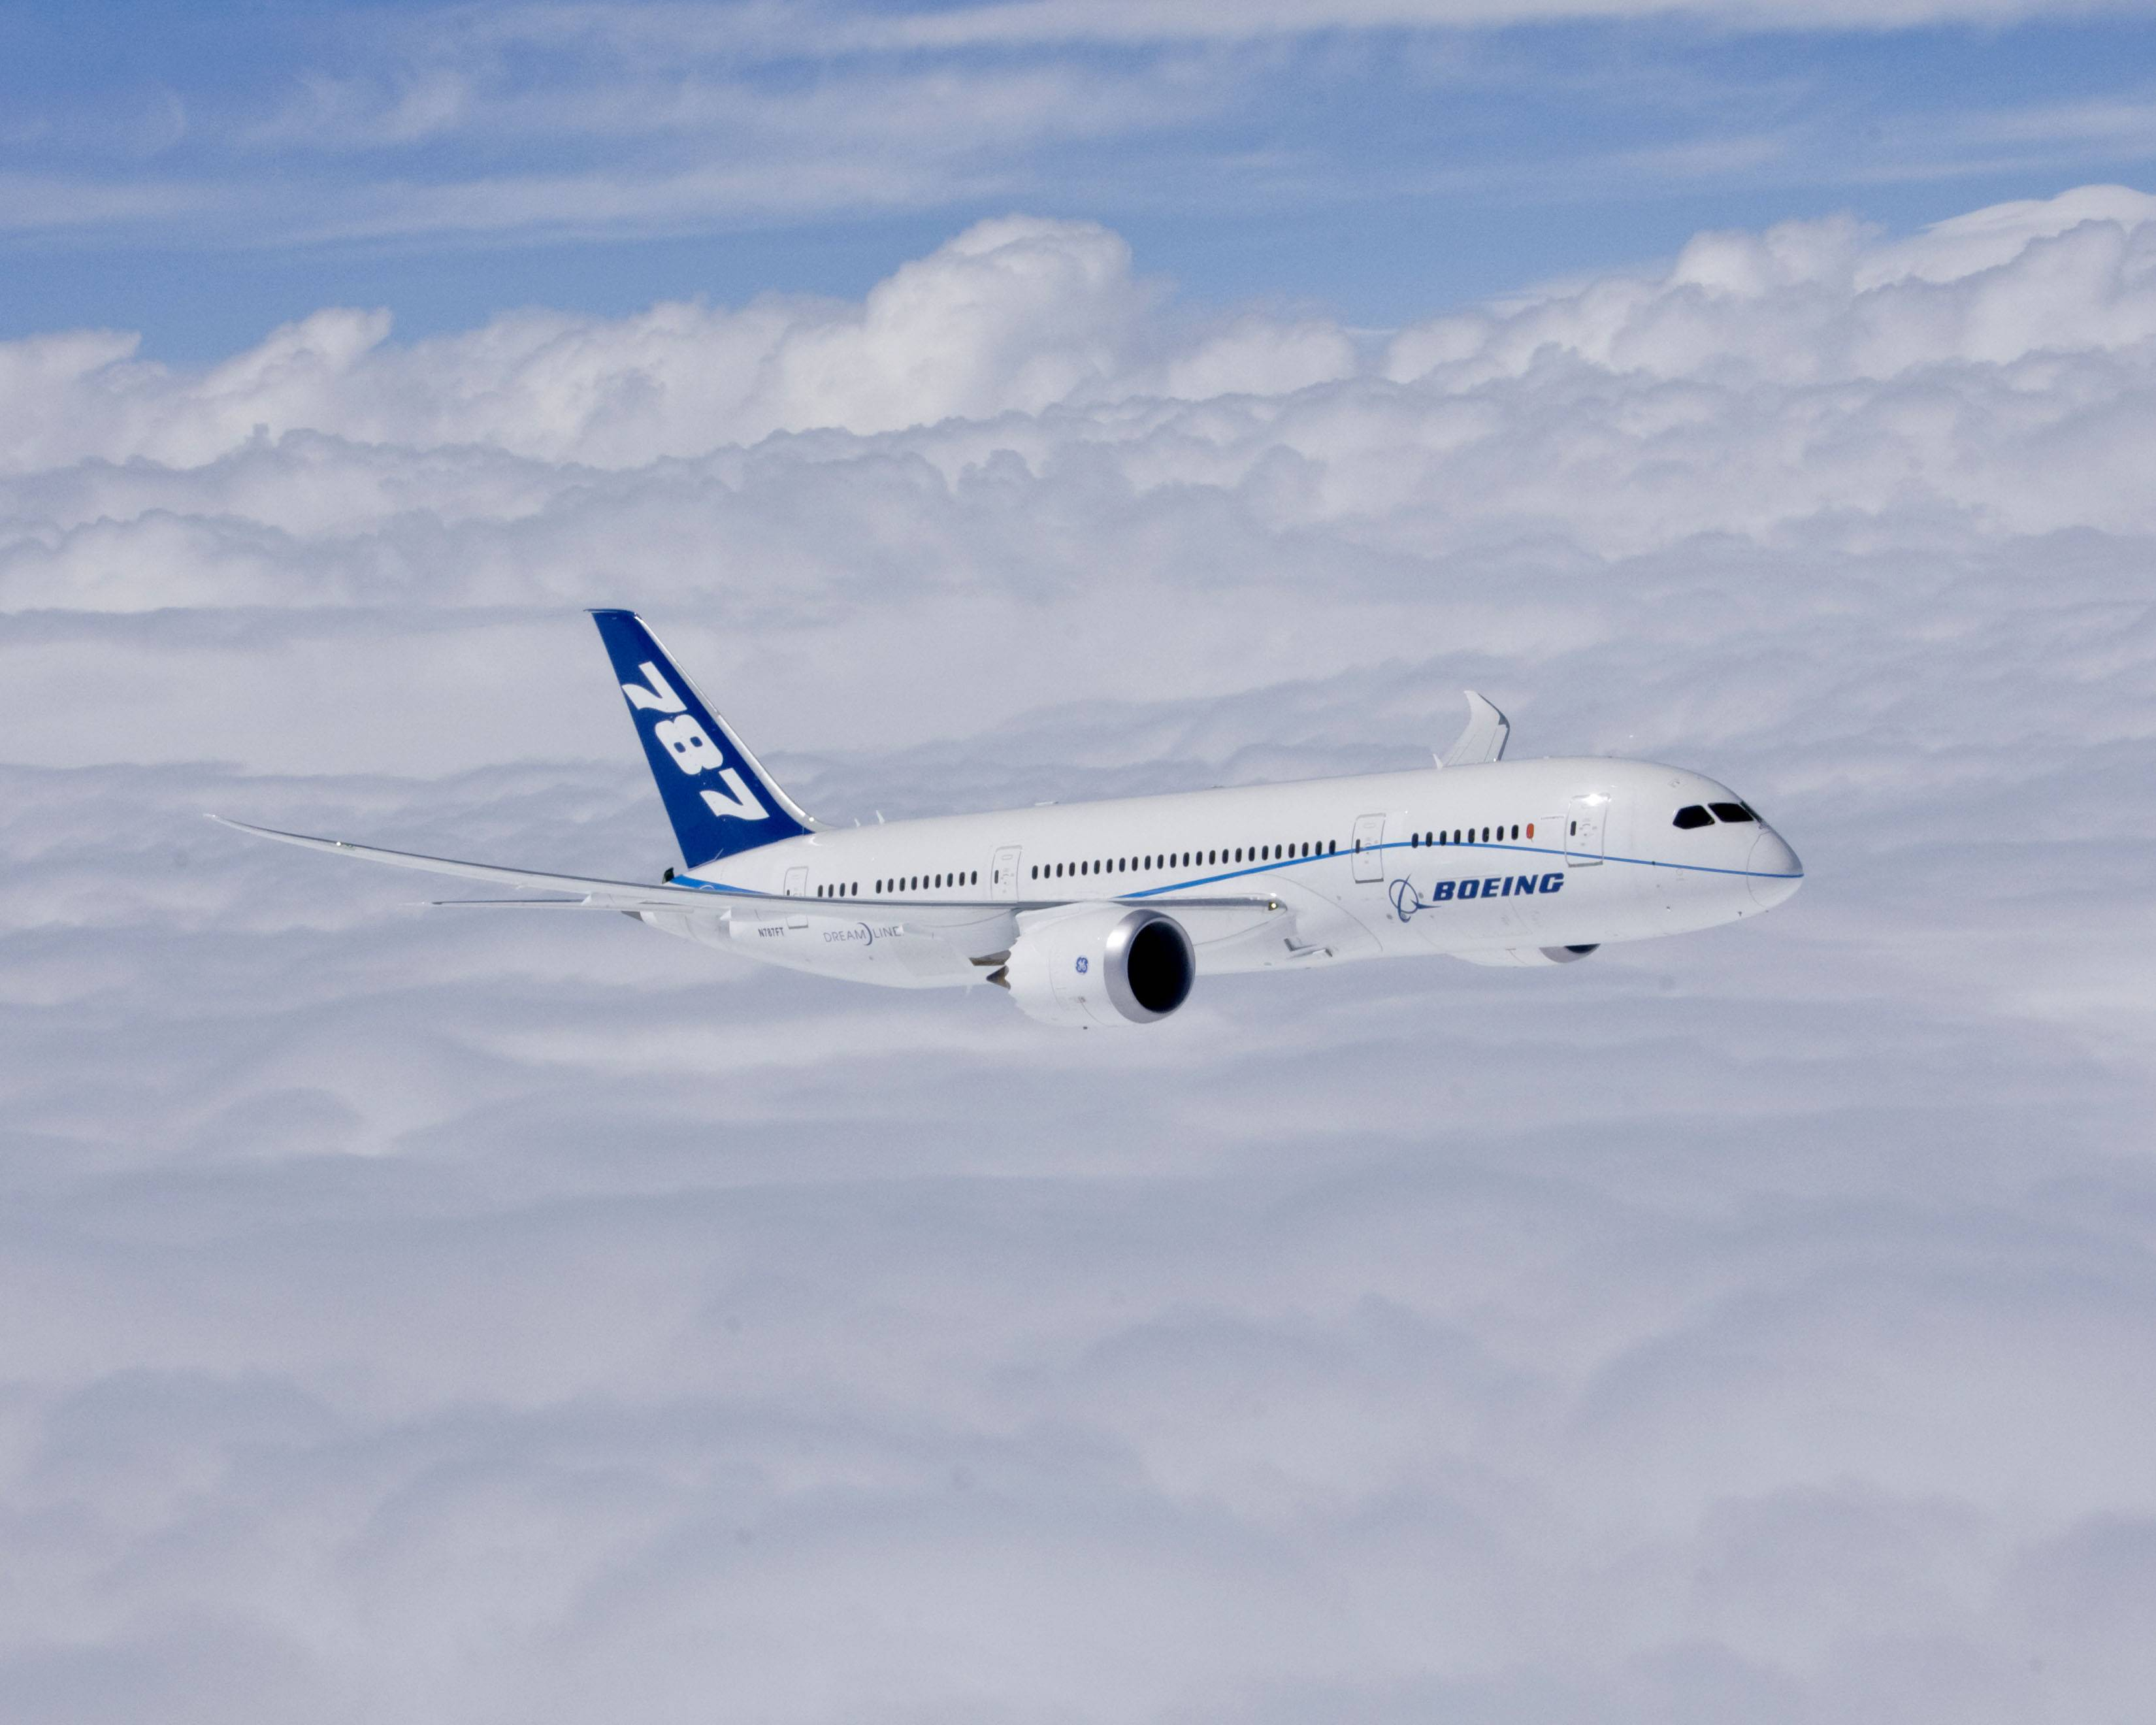 Powered by ge engines, Boeing 787-8, boeing completes first flight of first 787 dreamliner обои, картинки, фото